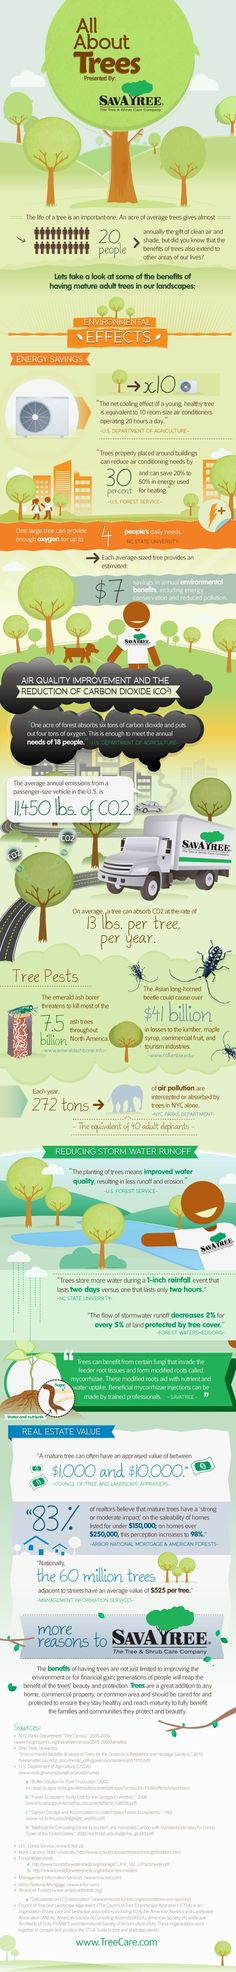 All About Trees [Infographic]